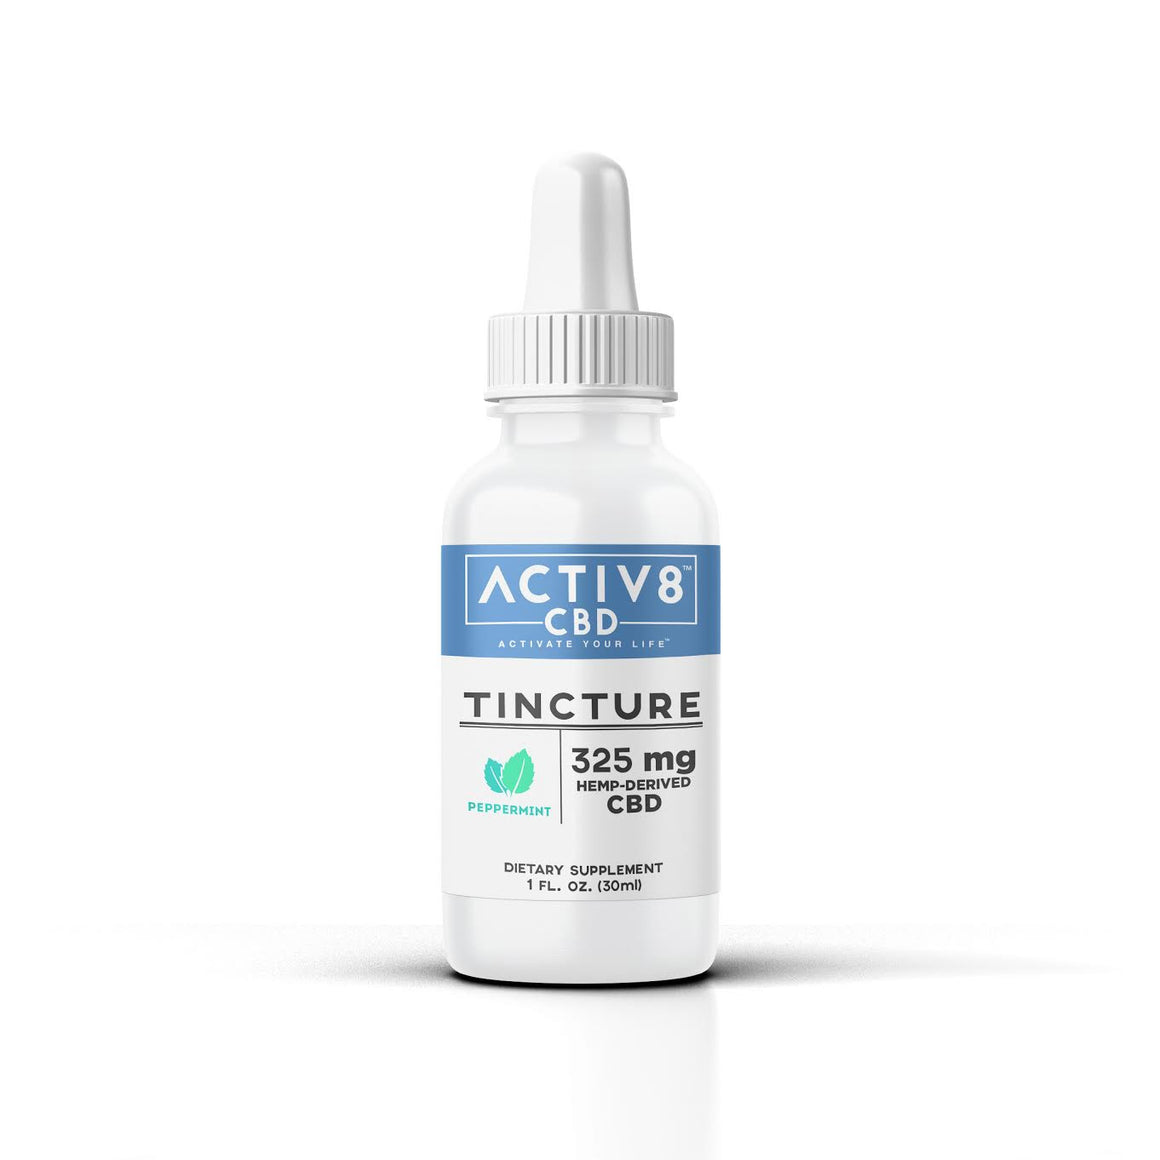 ACTIV8 CBD Tincture (325 mg of CBD - Helps relieve mild pain, stress, anxiety, insomnia and much more)